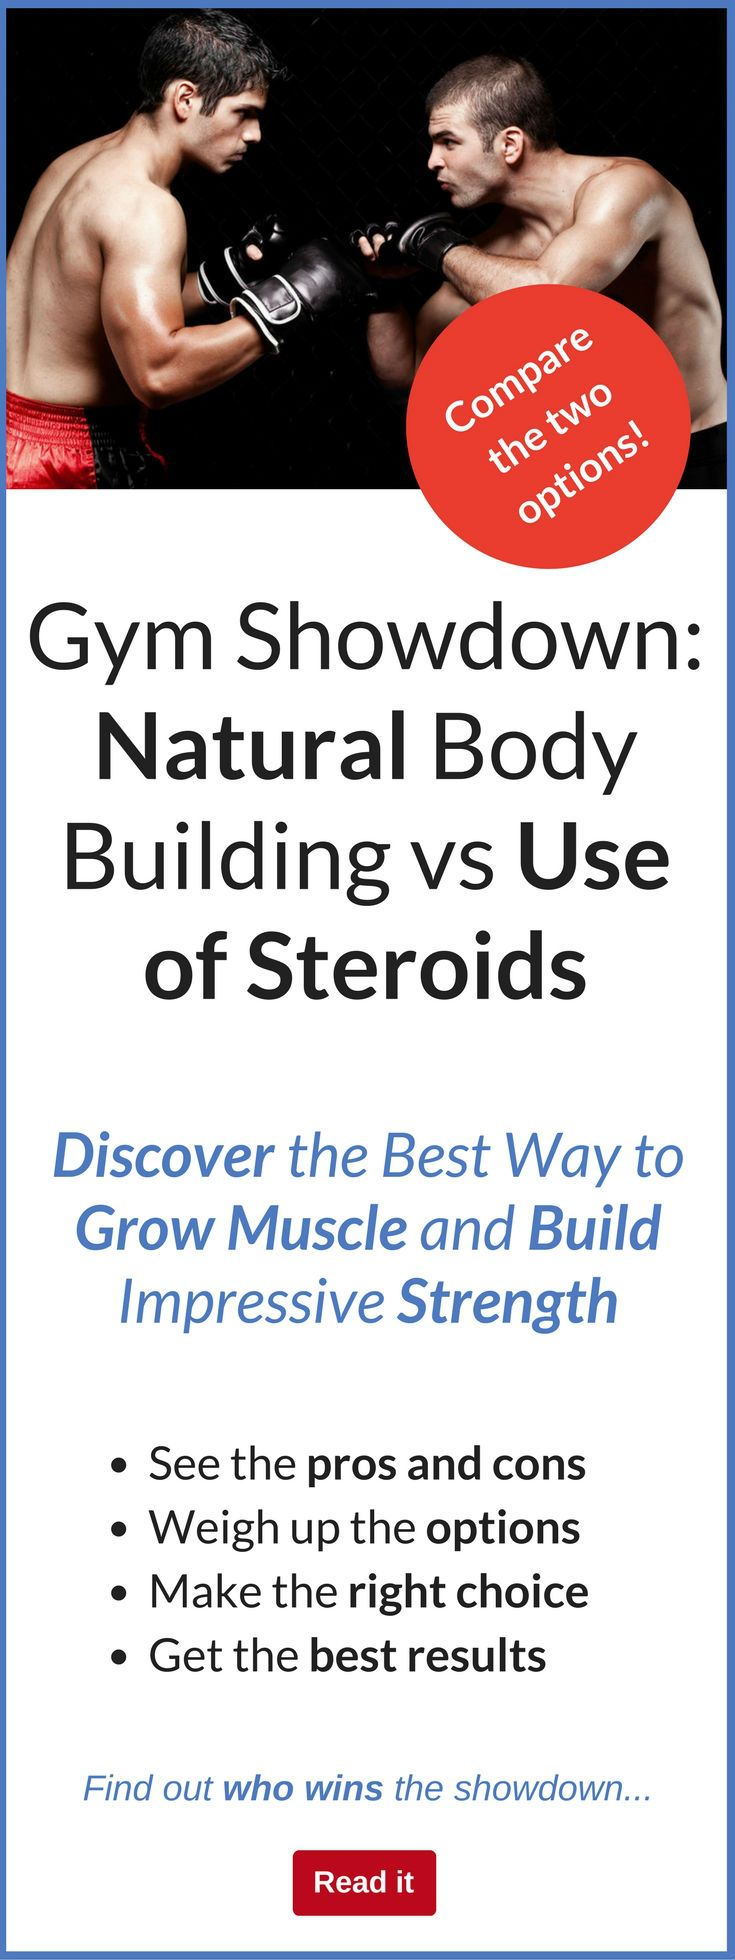 Natural bodybuilding and enhanced bodybuilding are opponents that have staunch advocates on both sides who will tell you in no uncertain terms why their version of bodybuilding is superior. This article gives you the facts about both types of bodybuilding so that you can determine which one best suits your lifestyle.